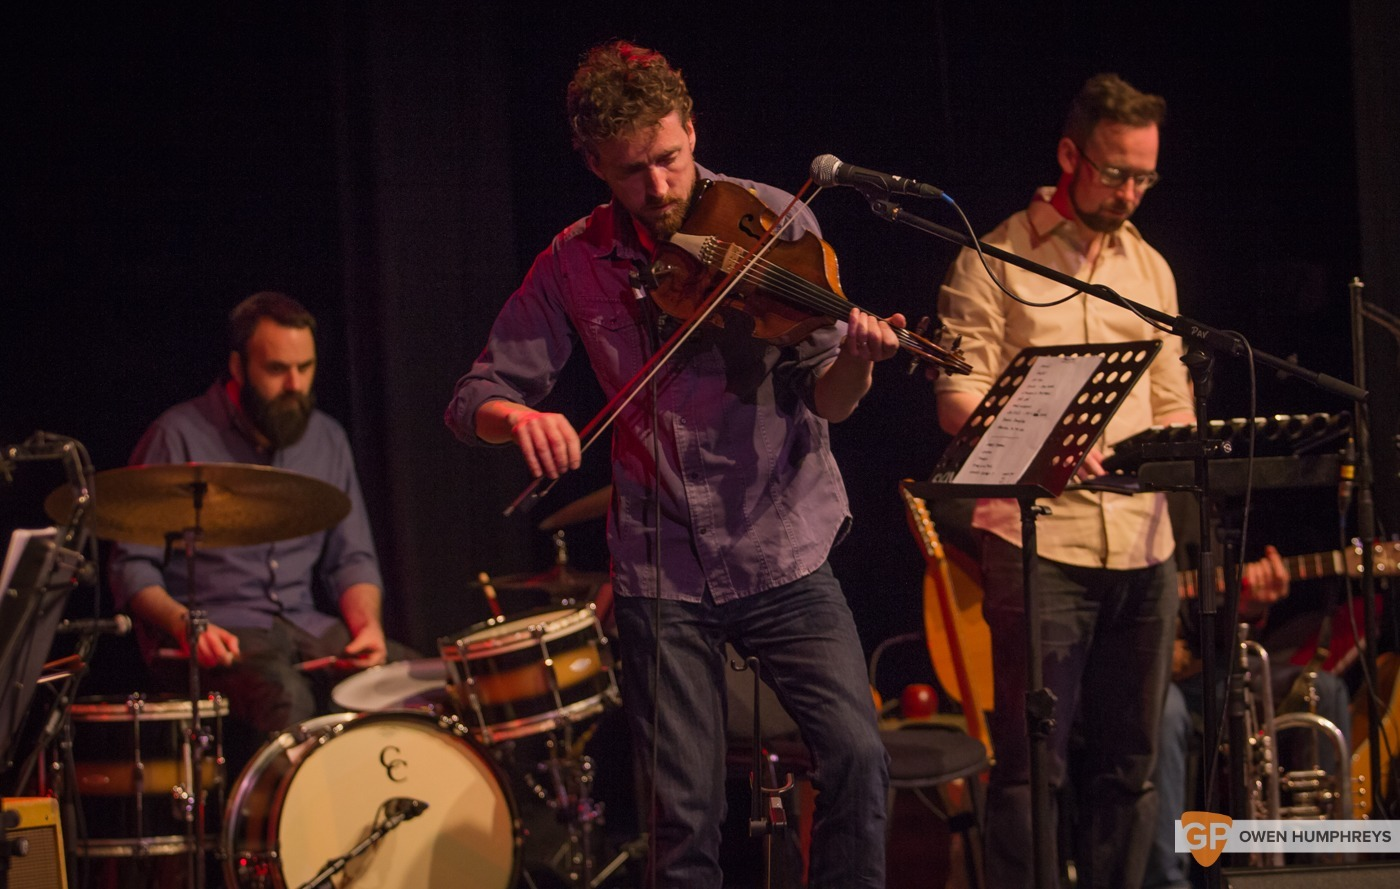 Colm Mac Con Iomaire at The Pavilion Theatre by Owen Humphreys (12 of 12)